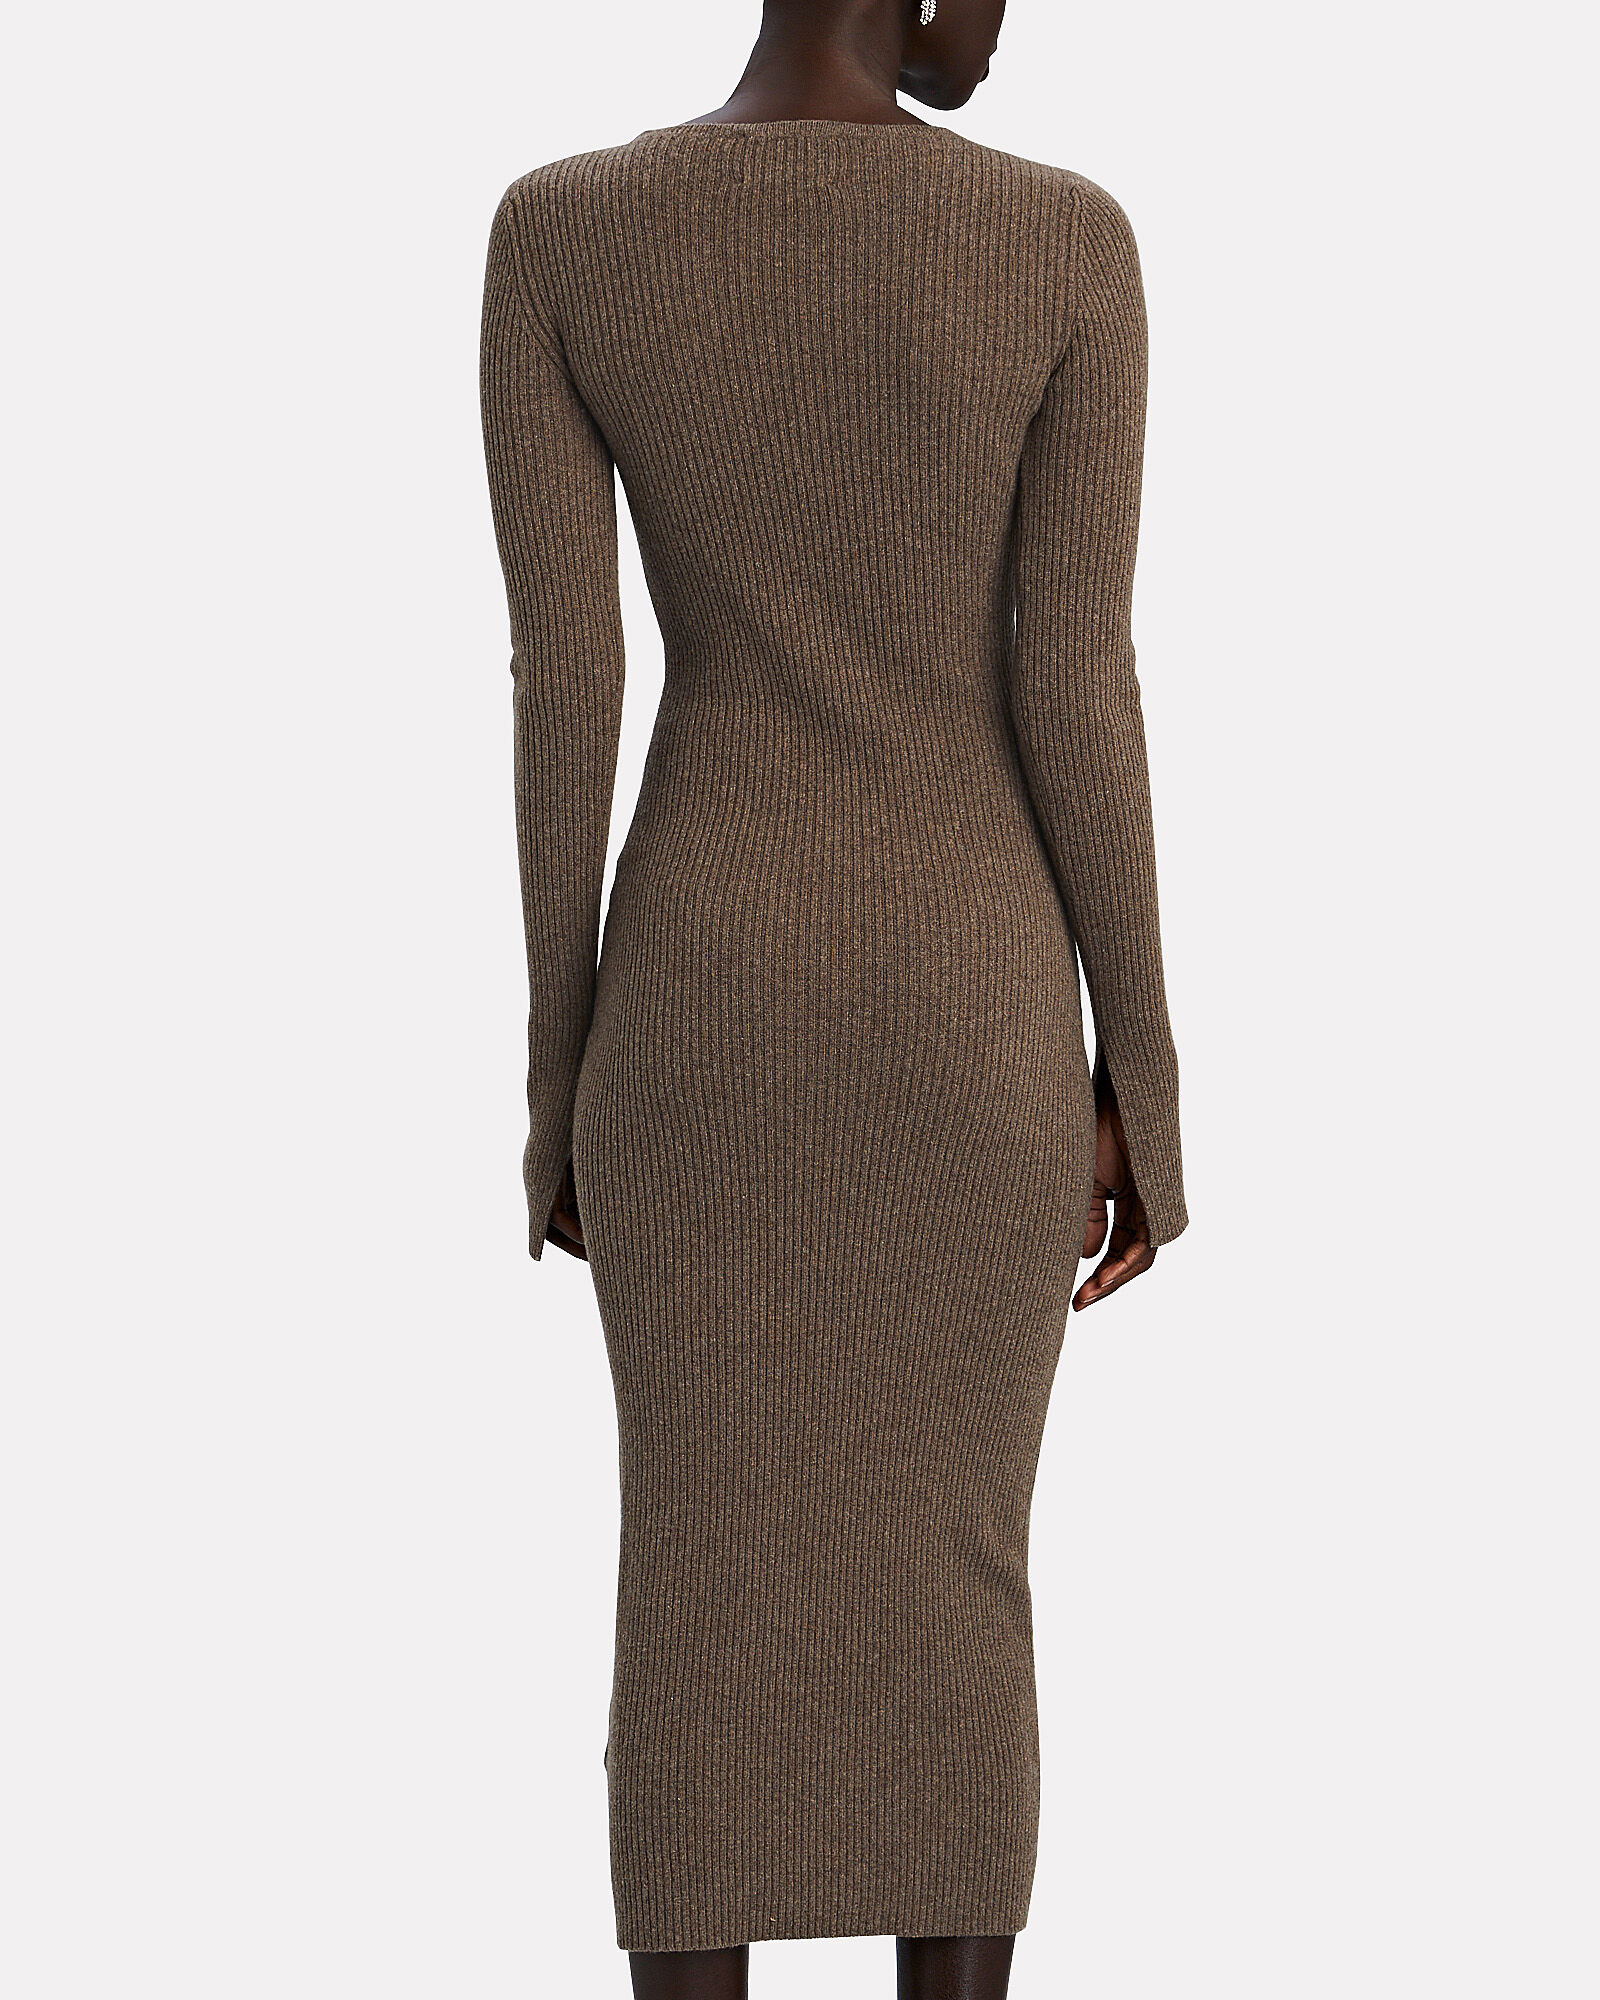 Etta Split Cuff Knit Midi Dress, BROWN, hi-res